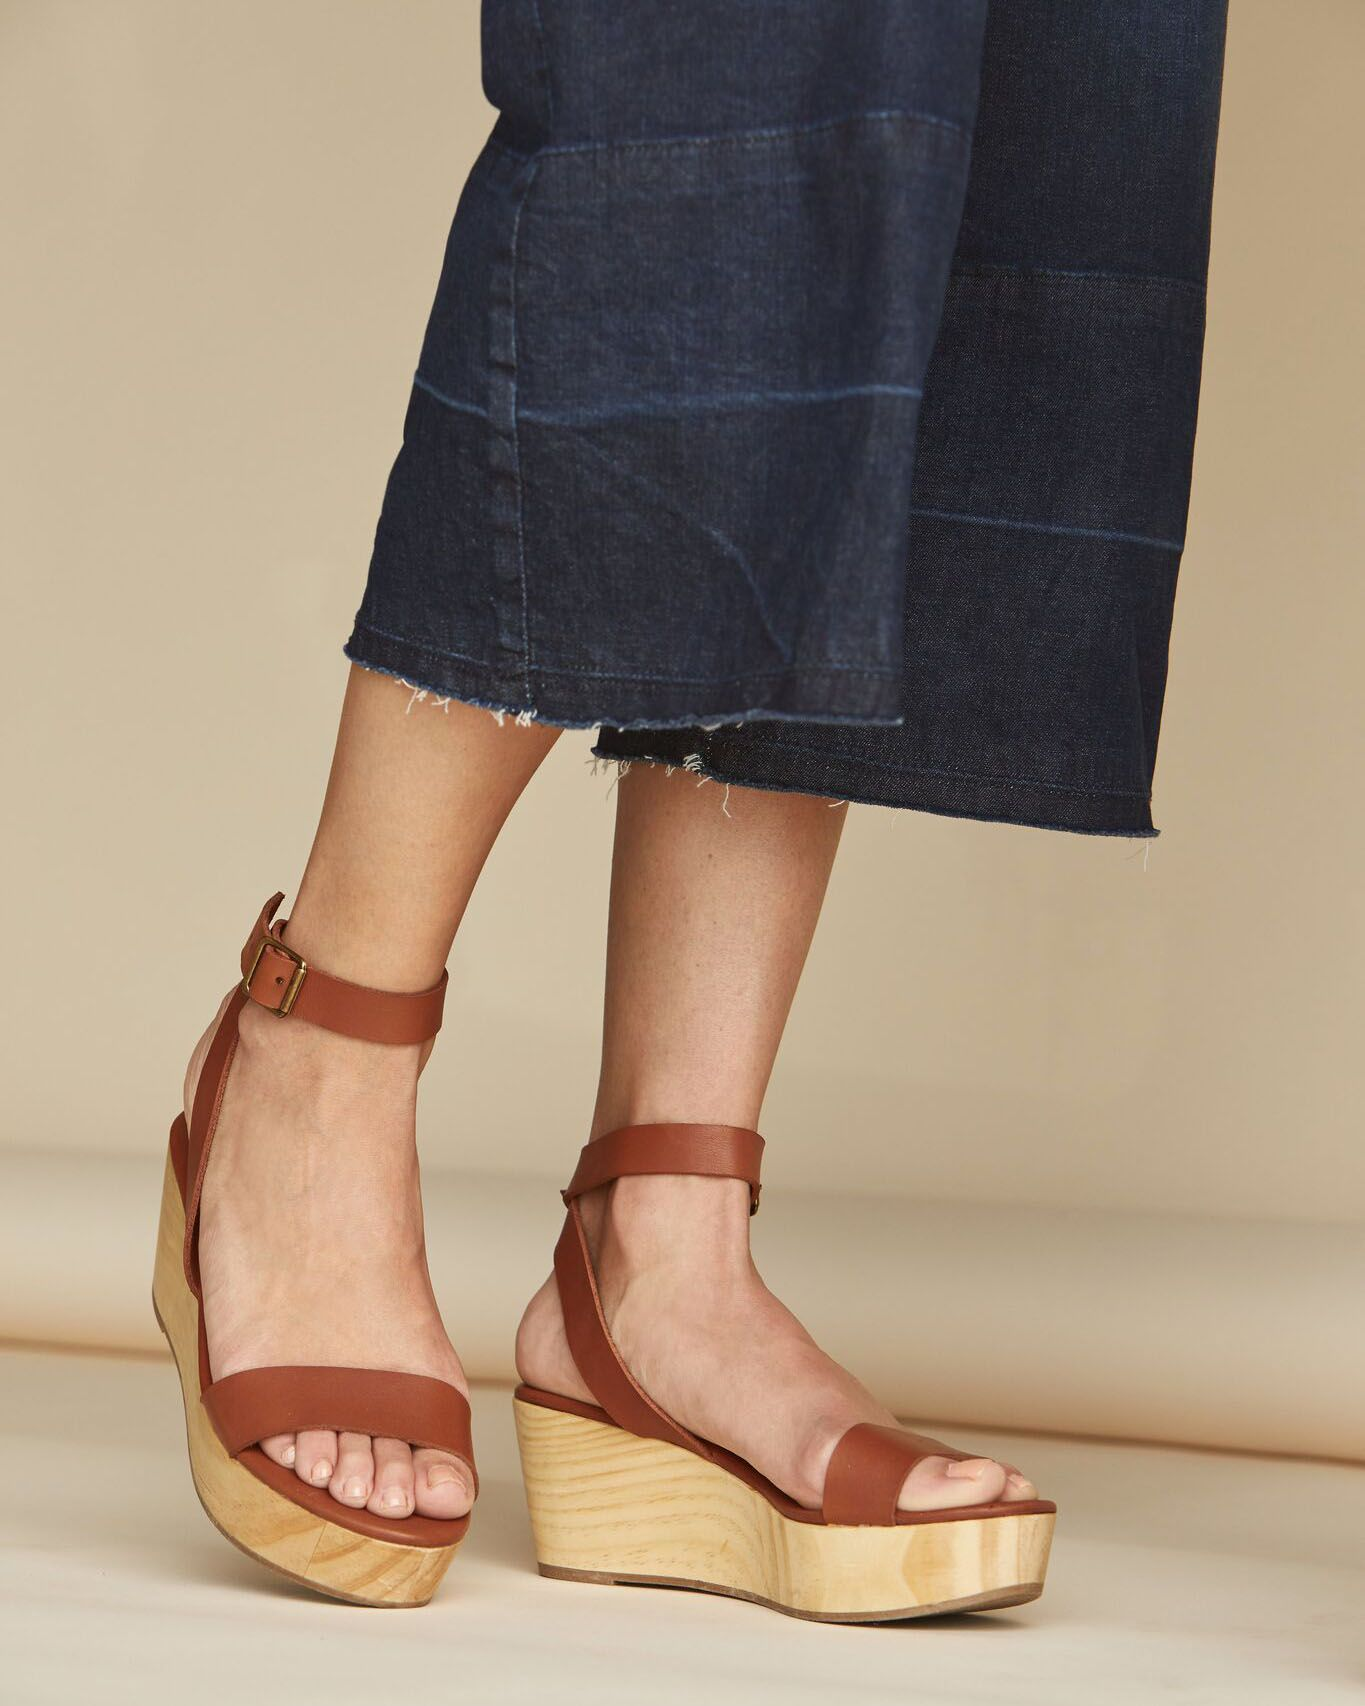 4e20a8156b1ecd Finally an elevated wedge sandal that provides both comfort and style. The  Sarita Wooden Wedge is proudly handcrafted in an ethical factory in León